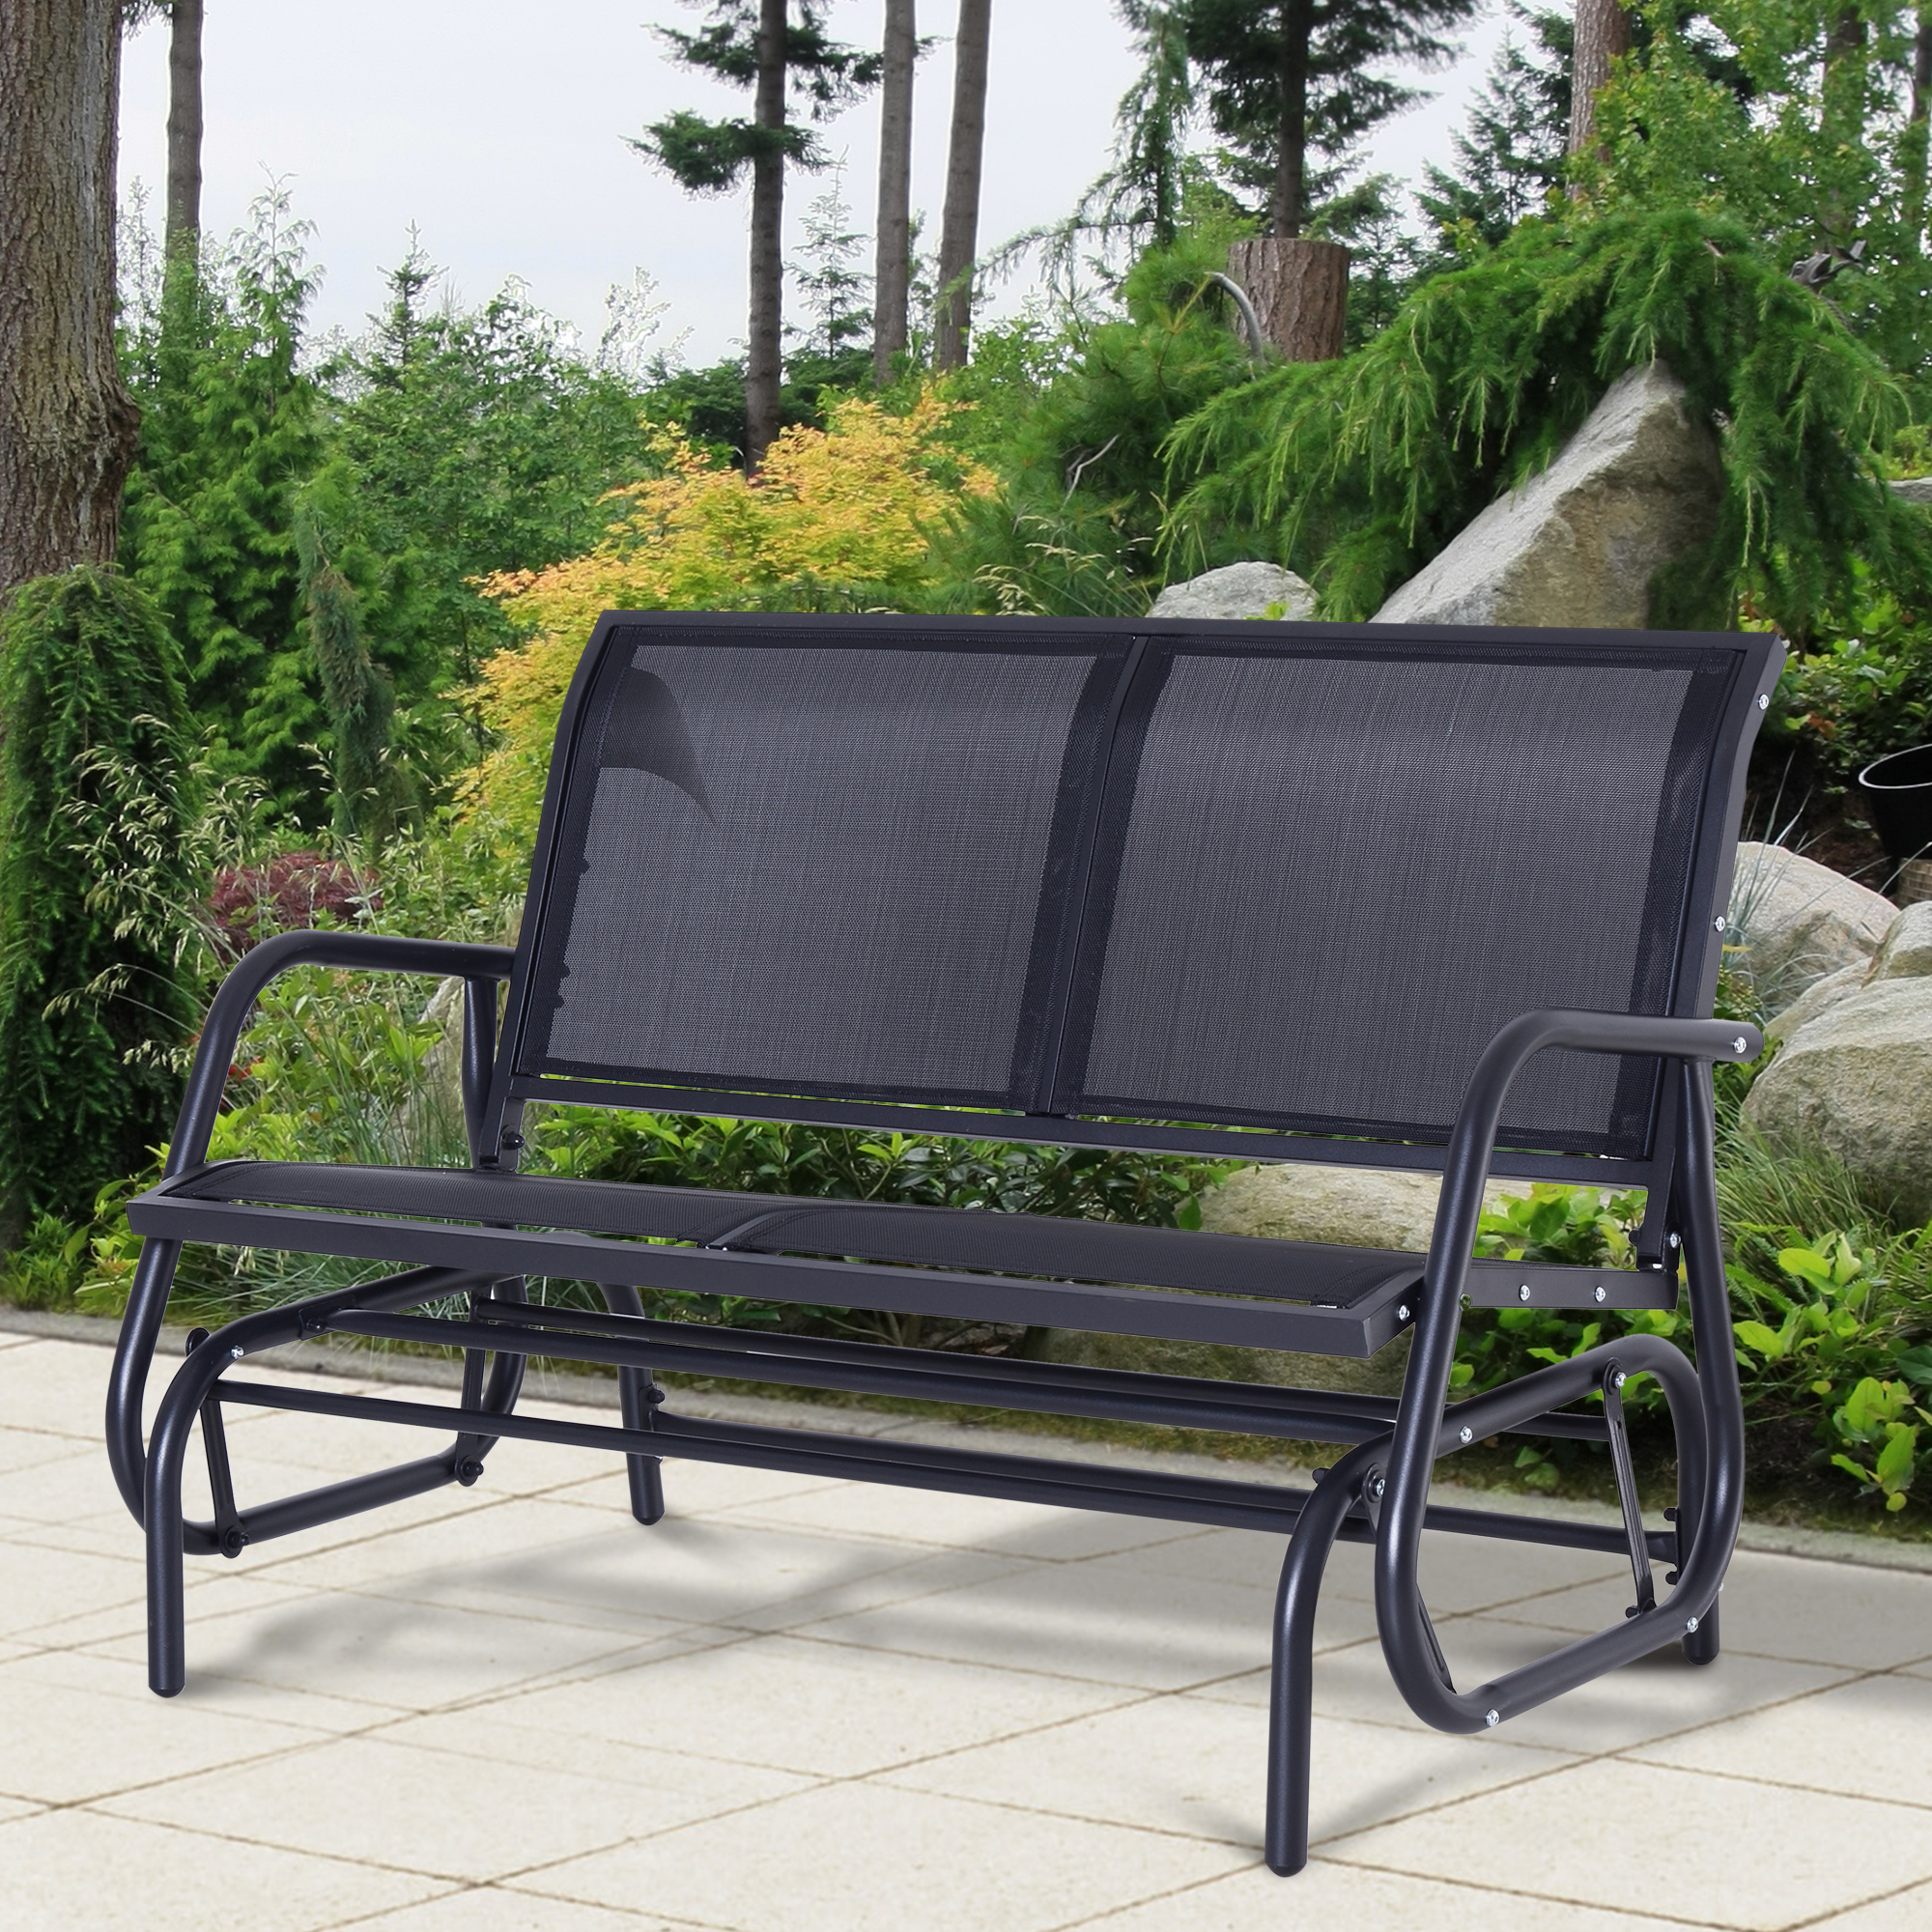 Outdoor Steel Patio Swing Glider Benches Inside 2019 Details About Outsunny Patio Garden Glider Bench 2 Person Double Swing Chair Rocker Deck Black (View 4 of 25)